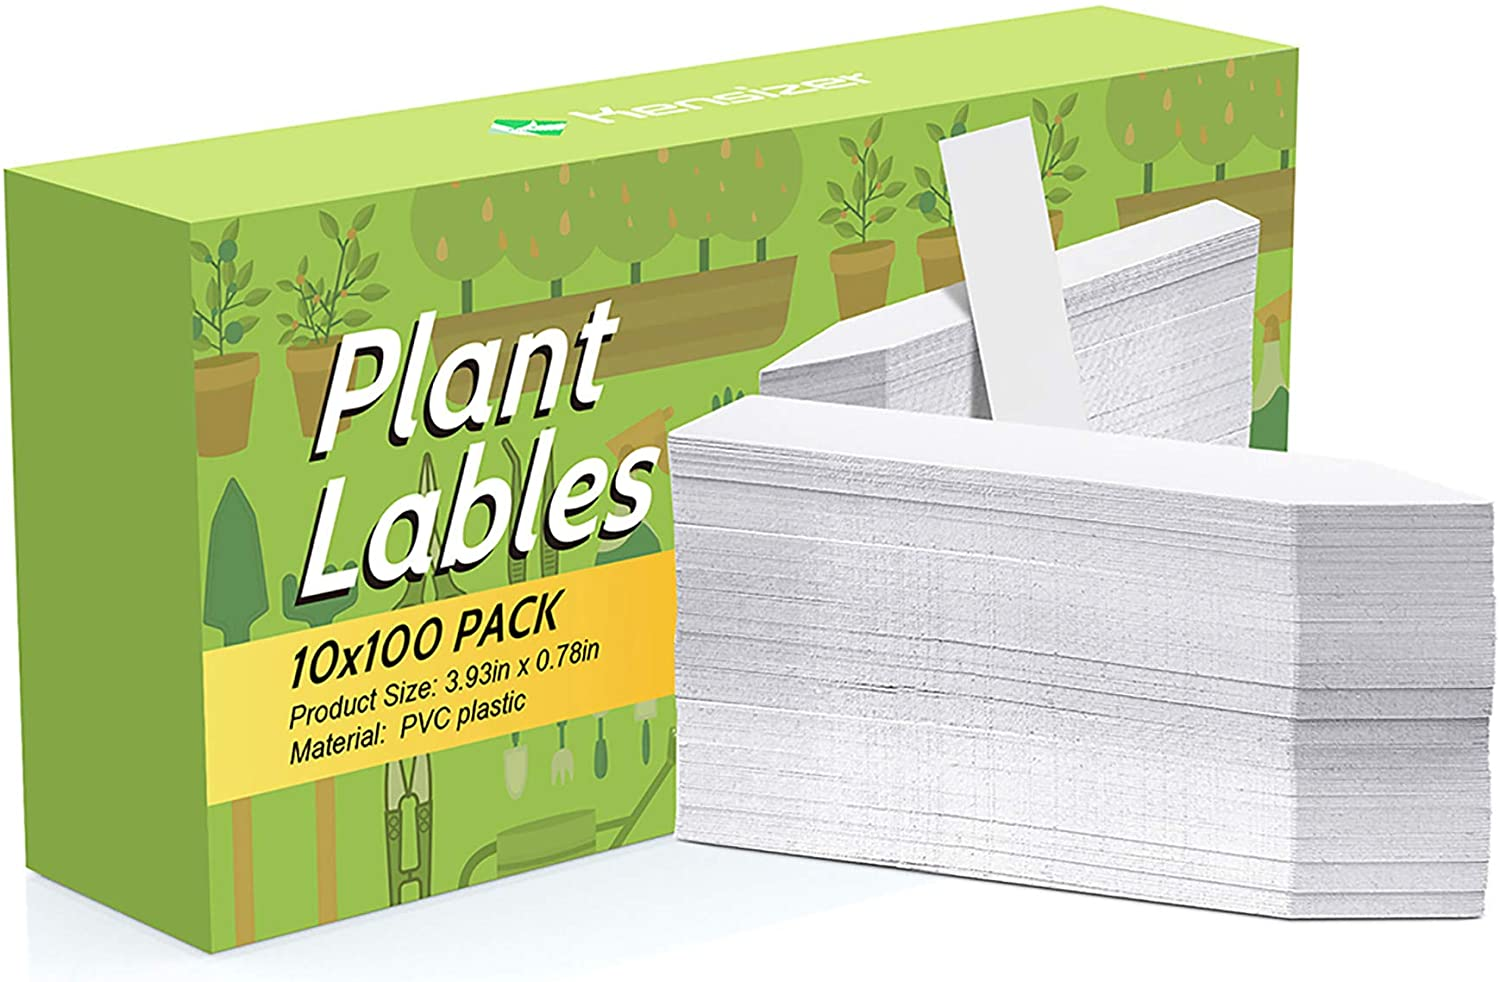 Kensizer 1000 Pcs 4 Inch Plastic Waterproof Plant Labels, Plant Name Tags, Garden Labels for Plants Marker